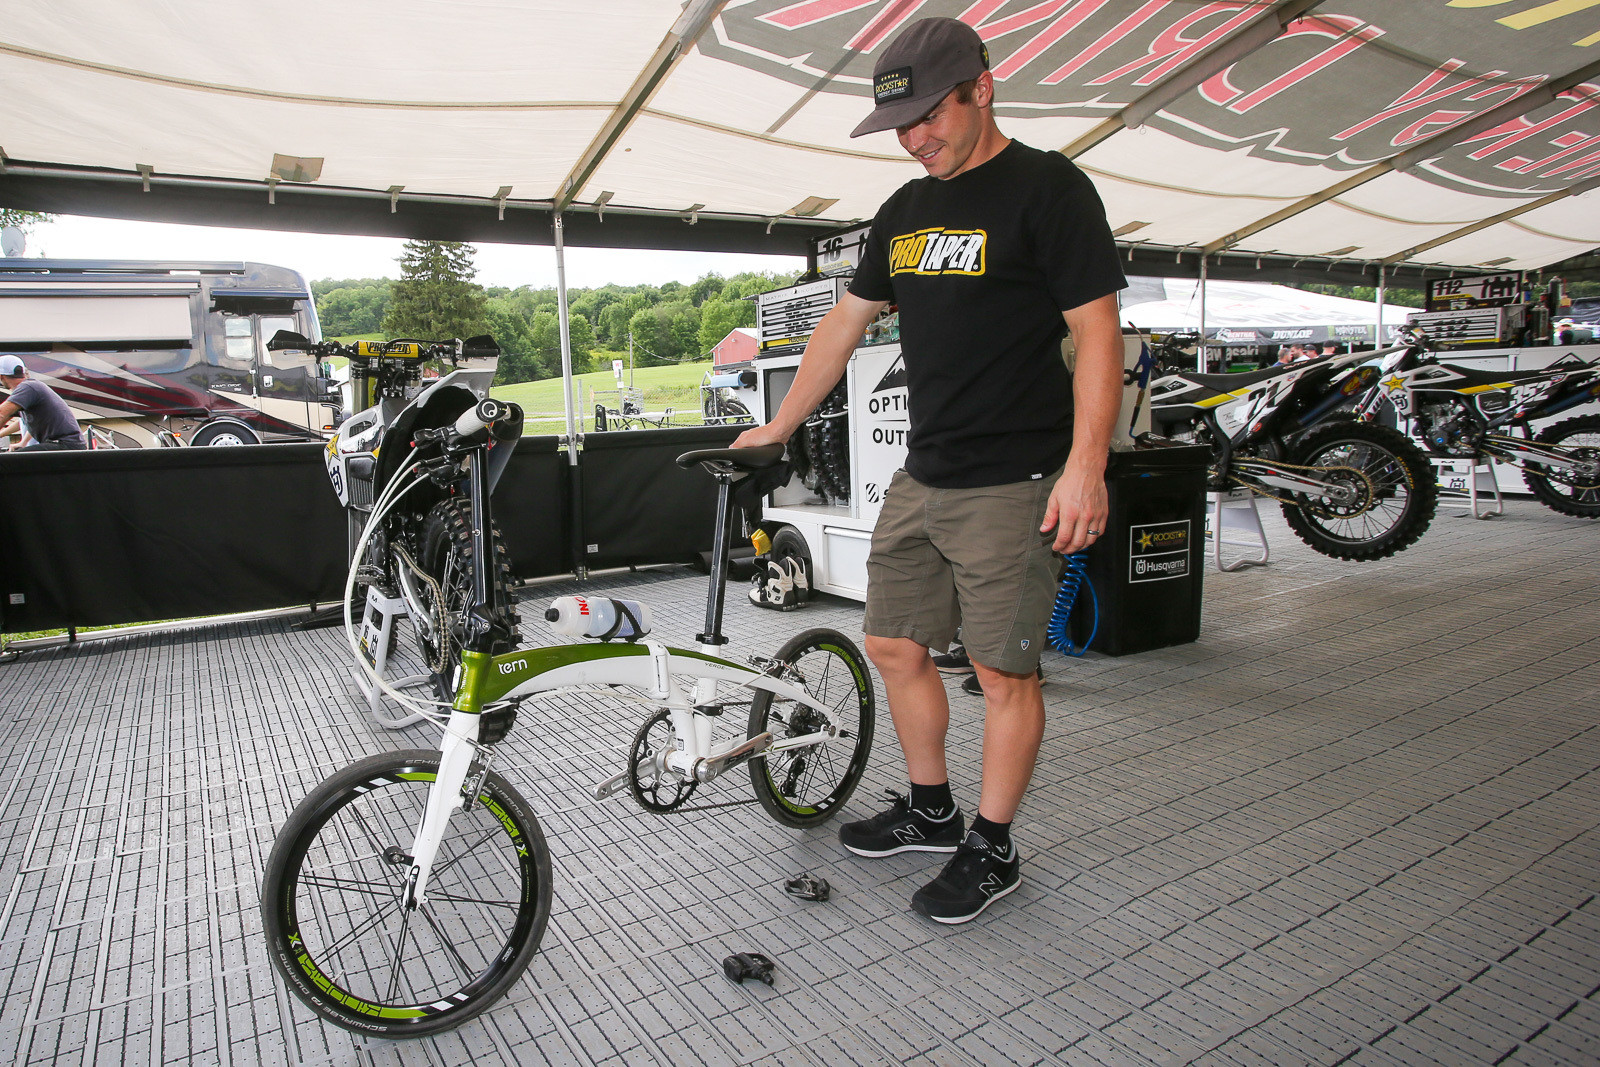 Zach Osborne has a cool little folding road bike that he can stash in the underside of his bus. That way he can get in rides when he gets to the track.